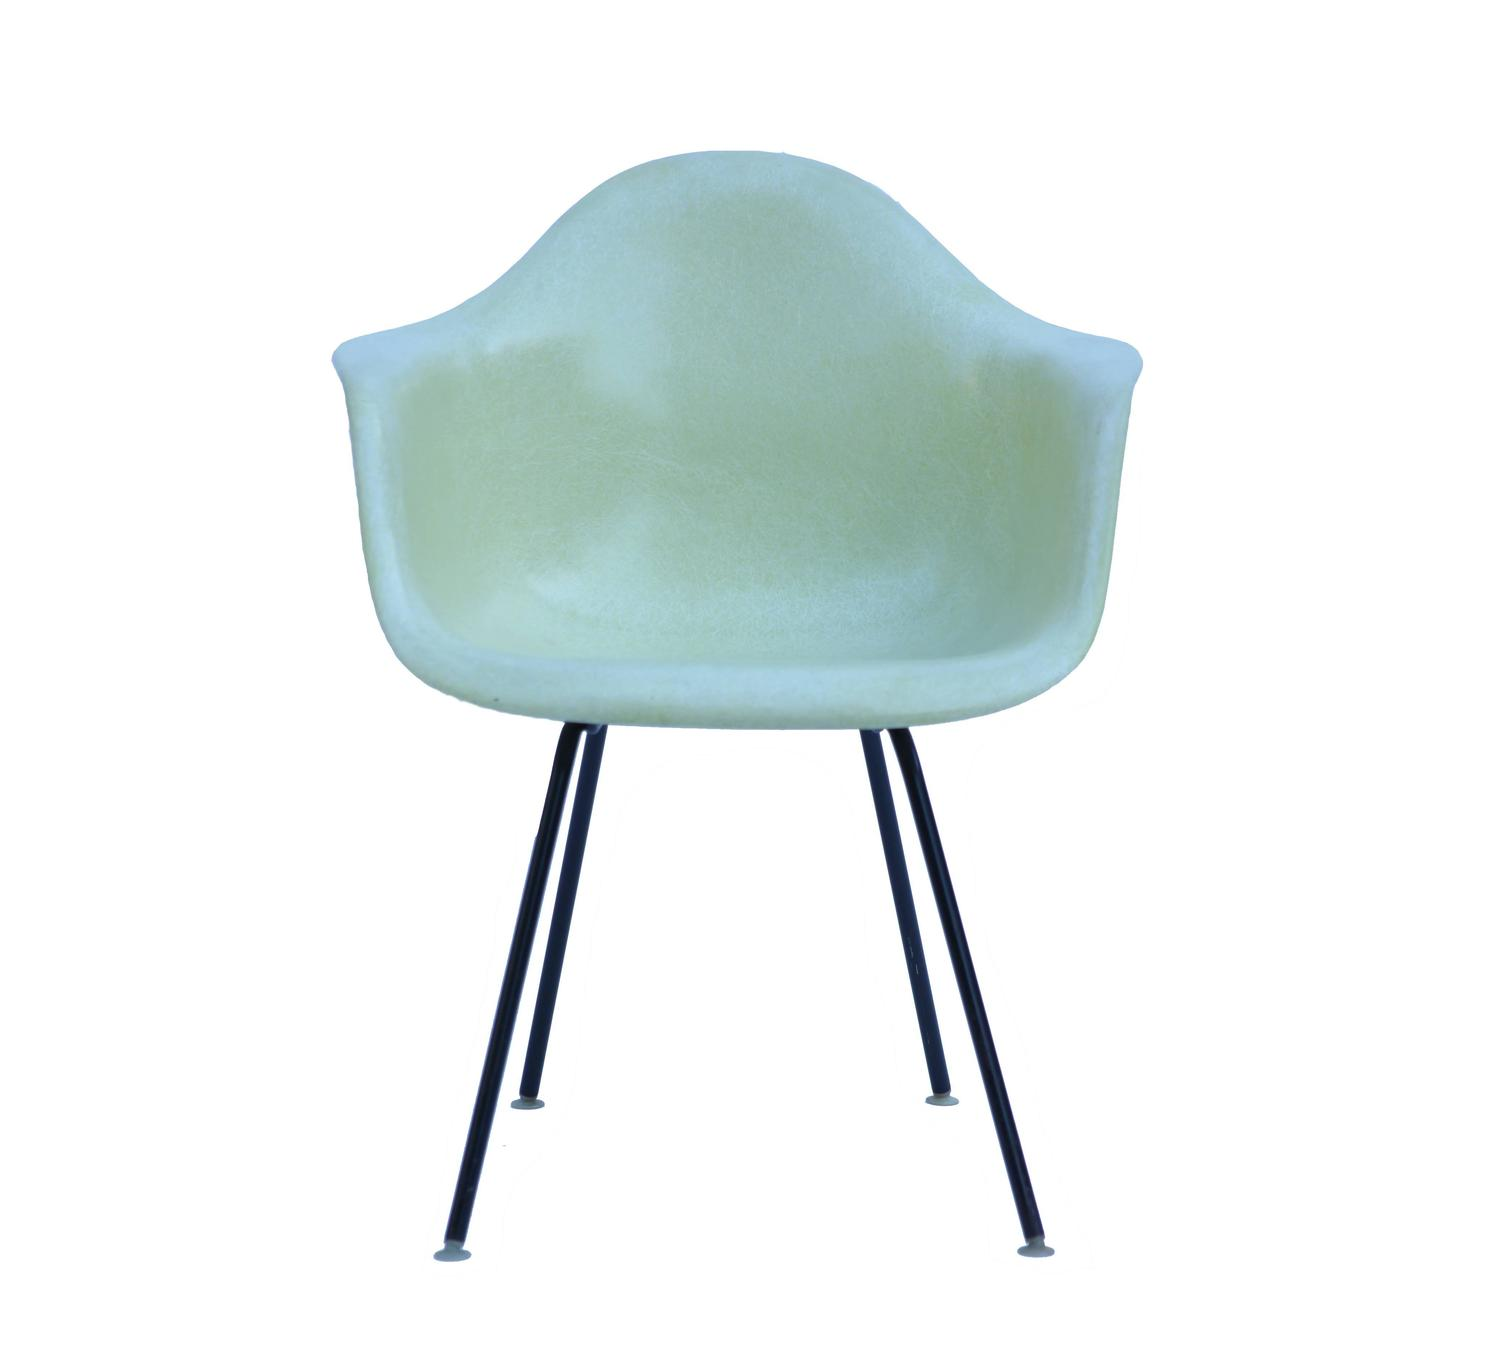 Vintage yellow eames fiberglass chair for herman miller at 1stdibs - Vintage herman miller ...